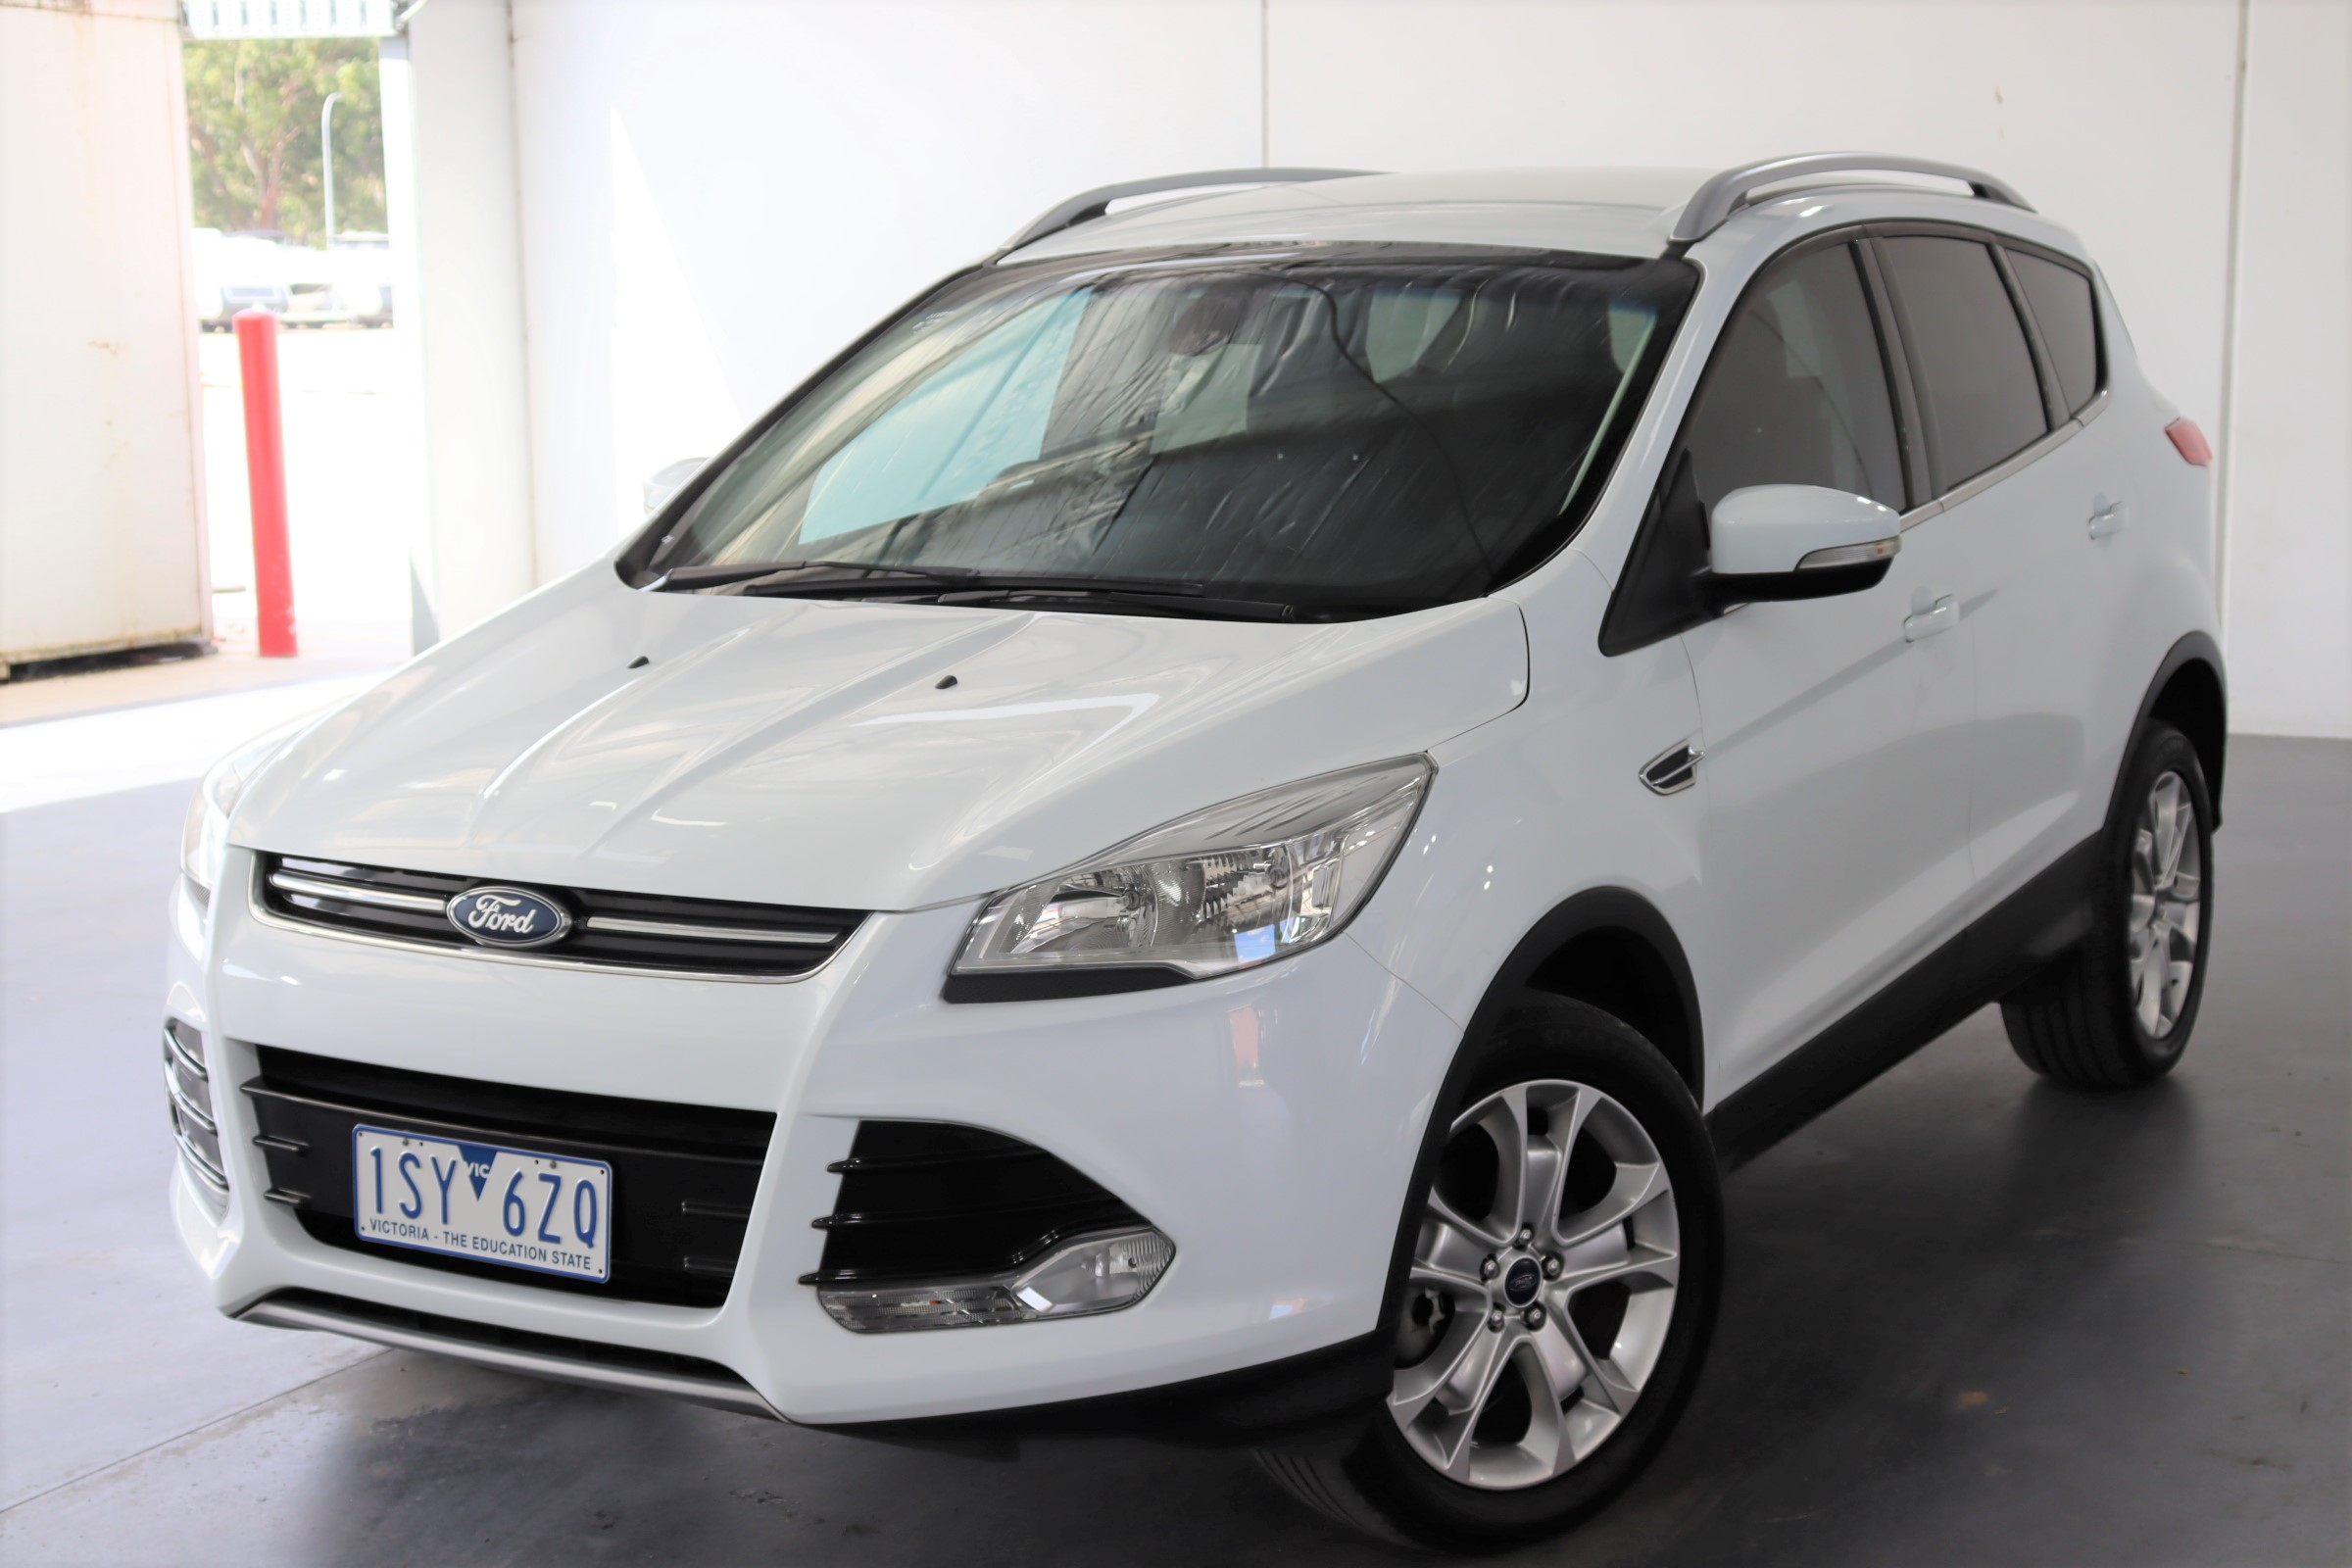 2013 Ford Kuga AWD TREND TF Automatic Wagon